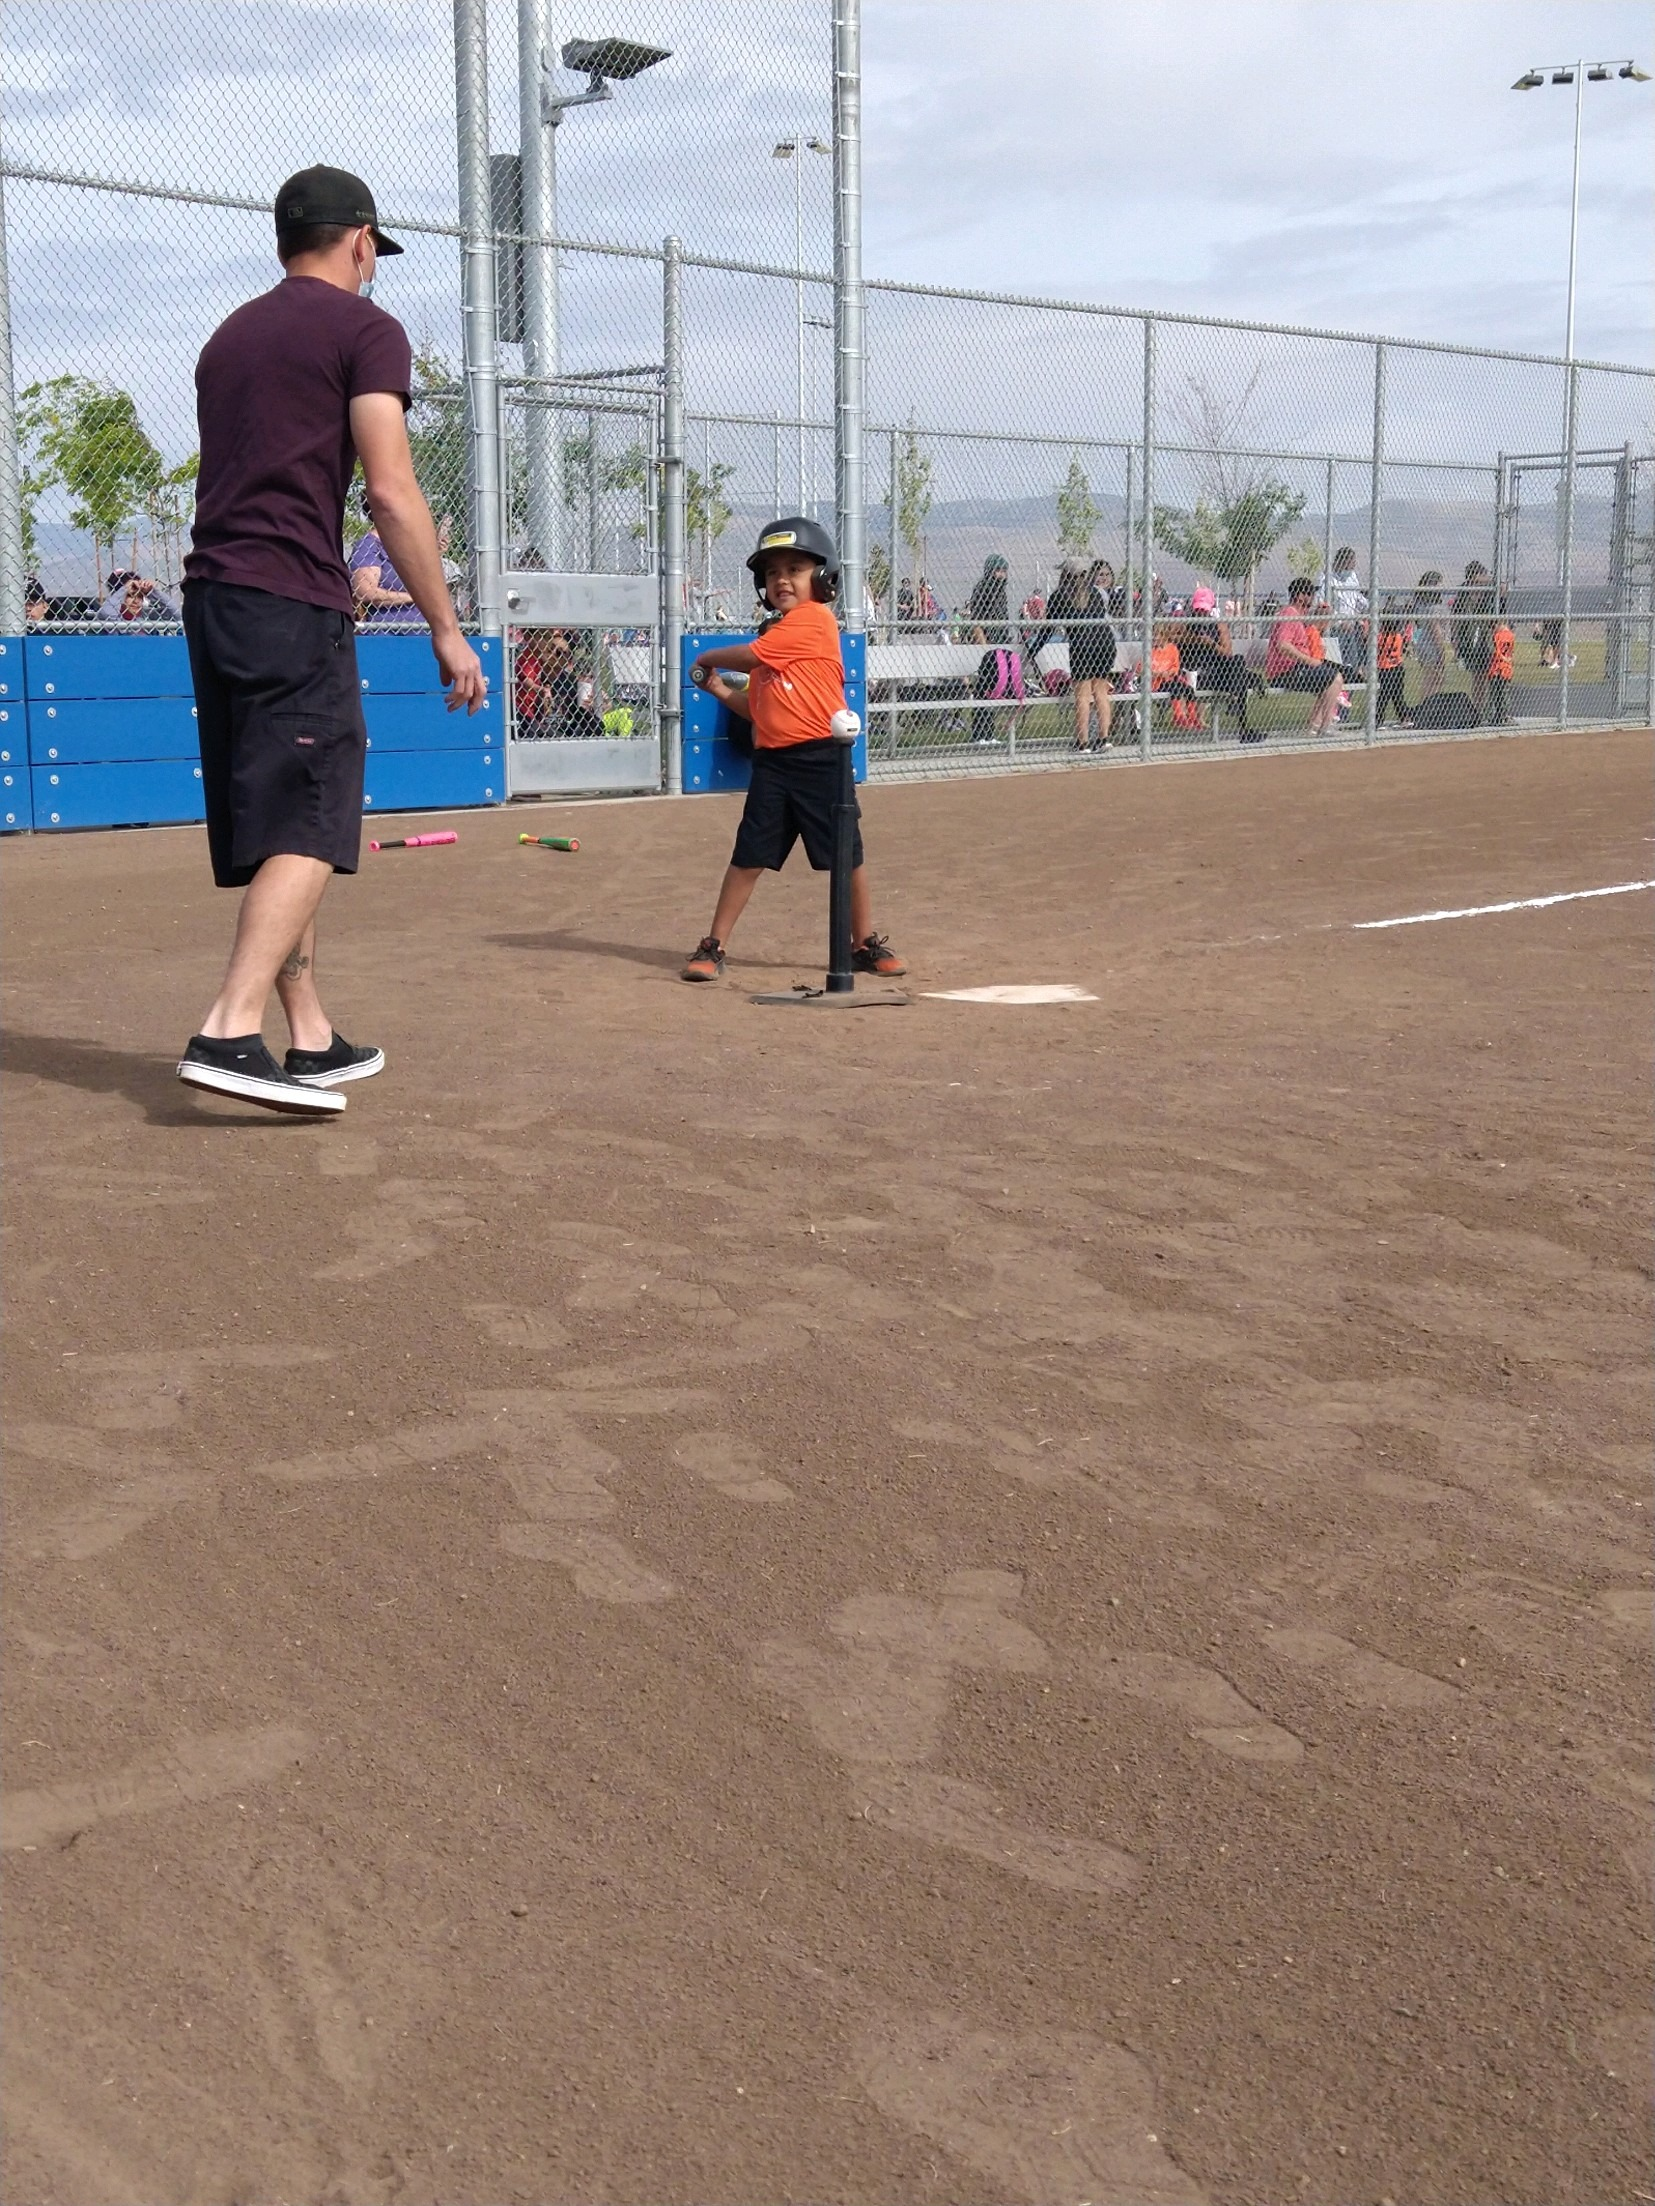 TBALL AND HTC